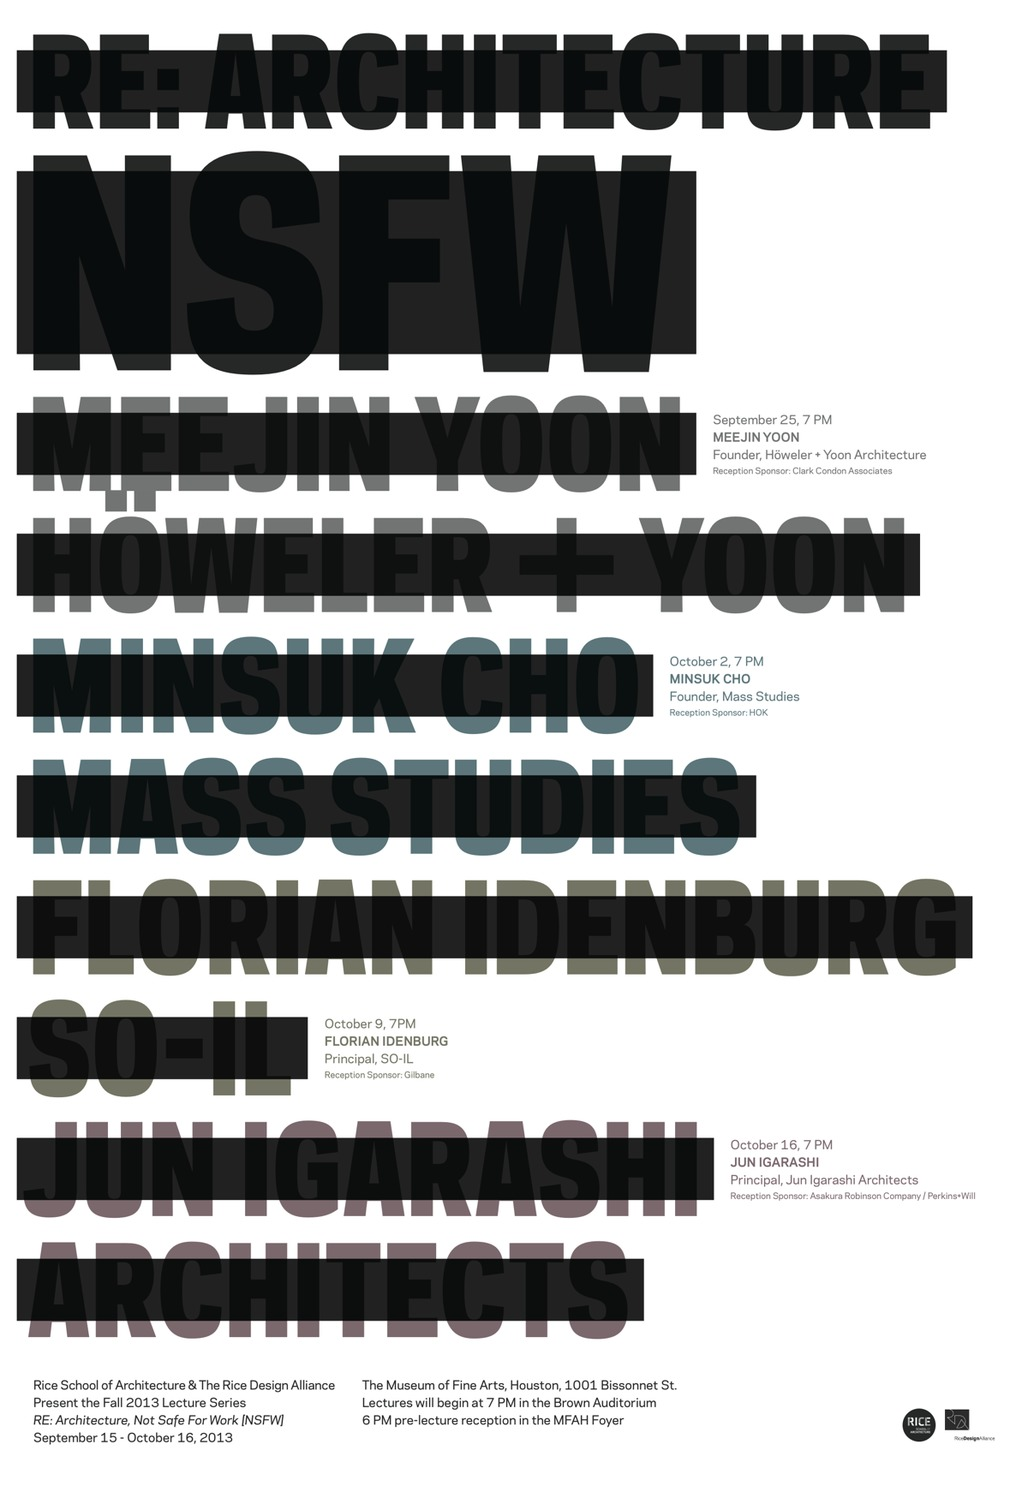 """Poster for RDA/RSA's """"Re: Architecture [NSFW]"""" Fall '13 lecture series. Design by Ian Searcy."""